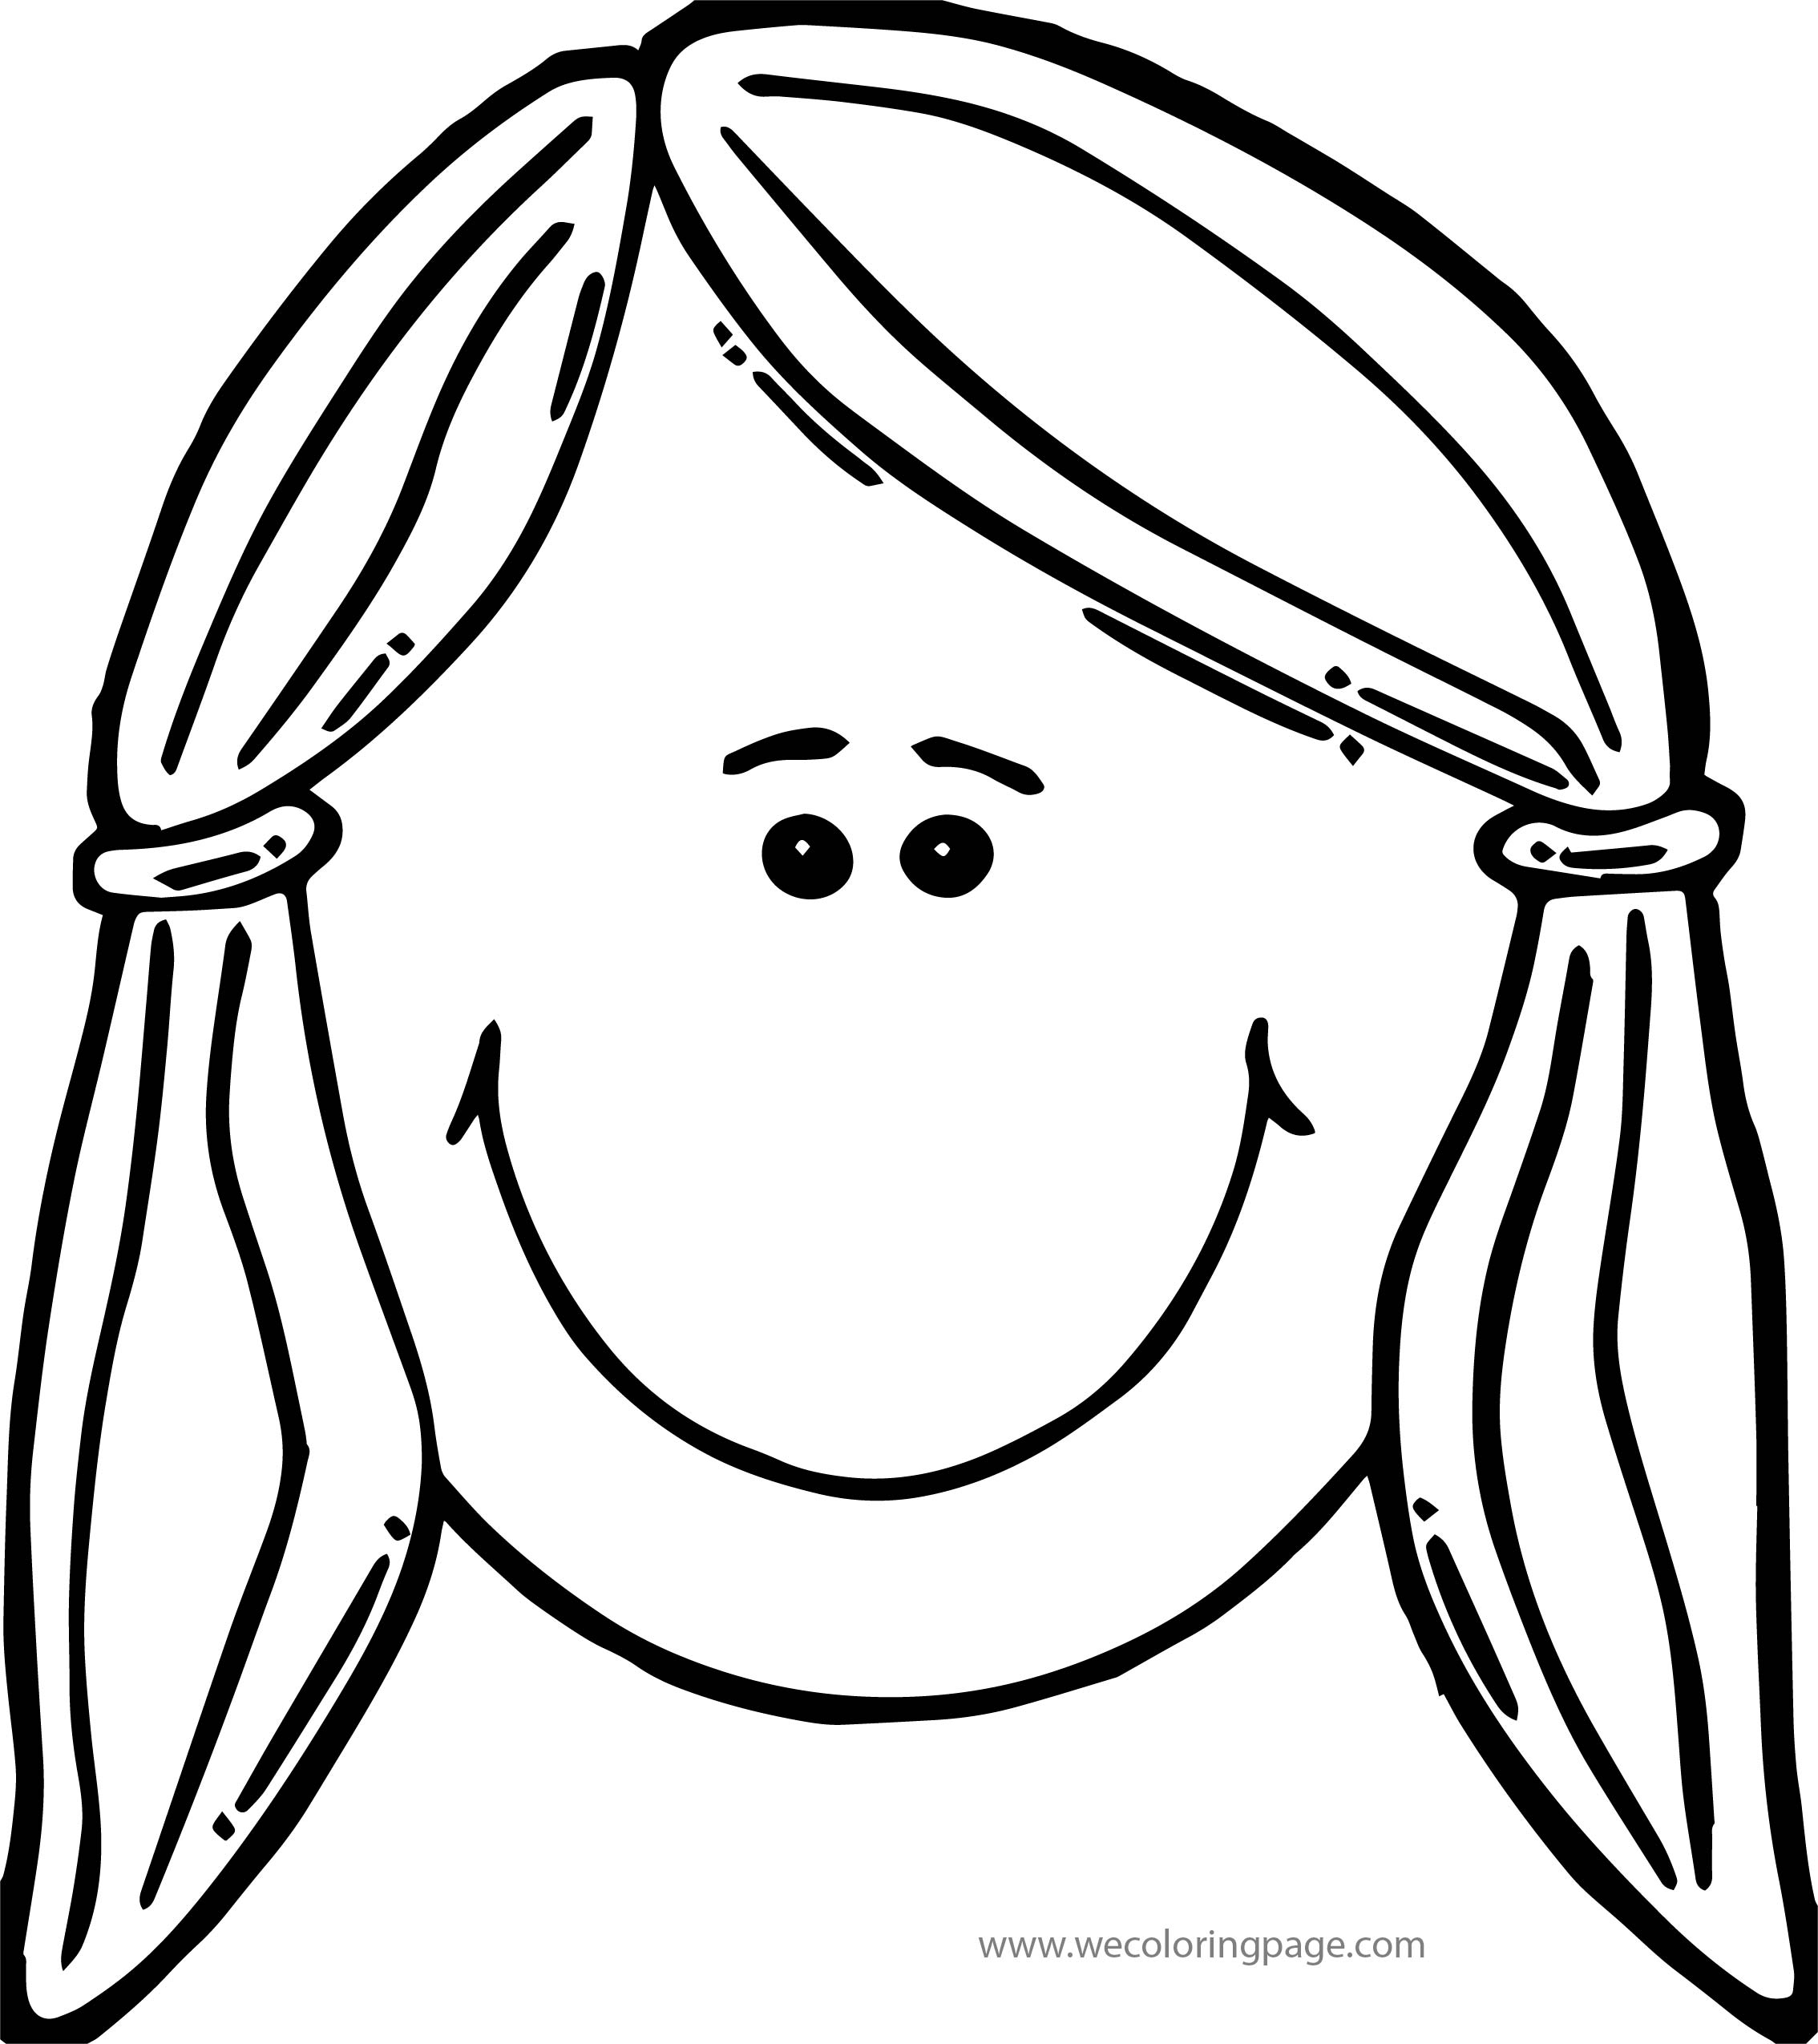 This Girl Boy Coloring Page